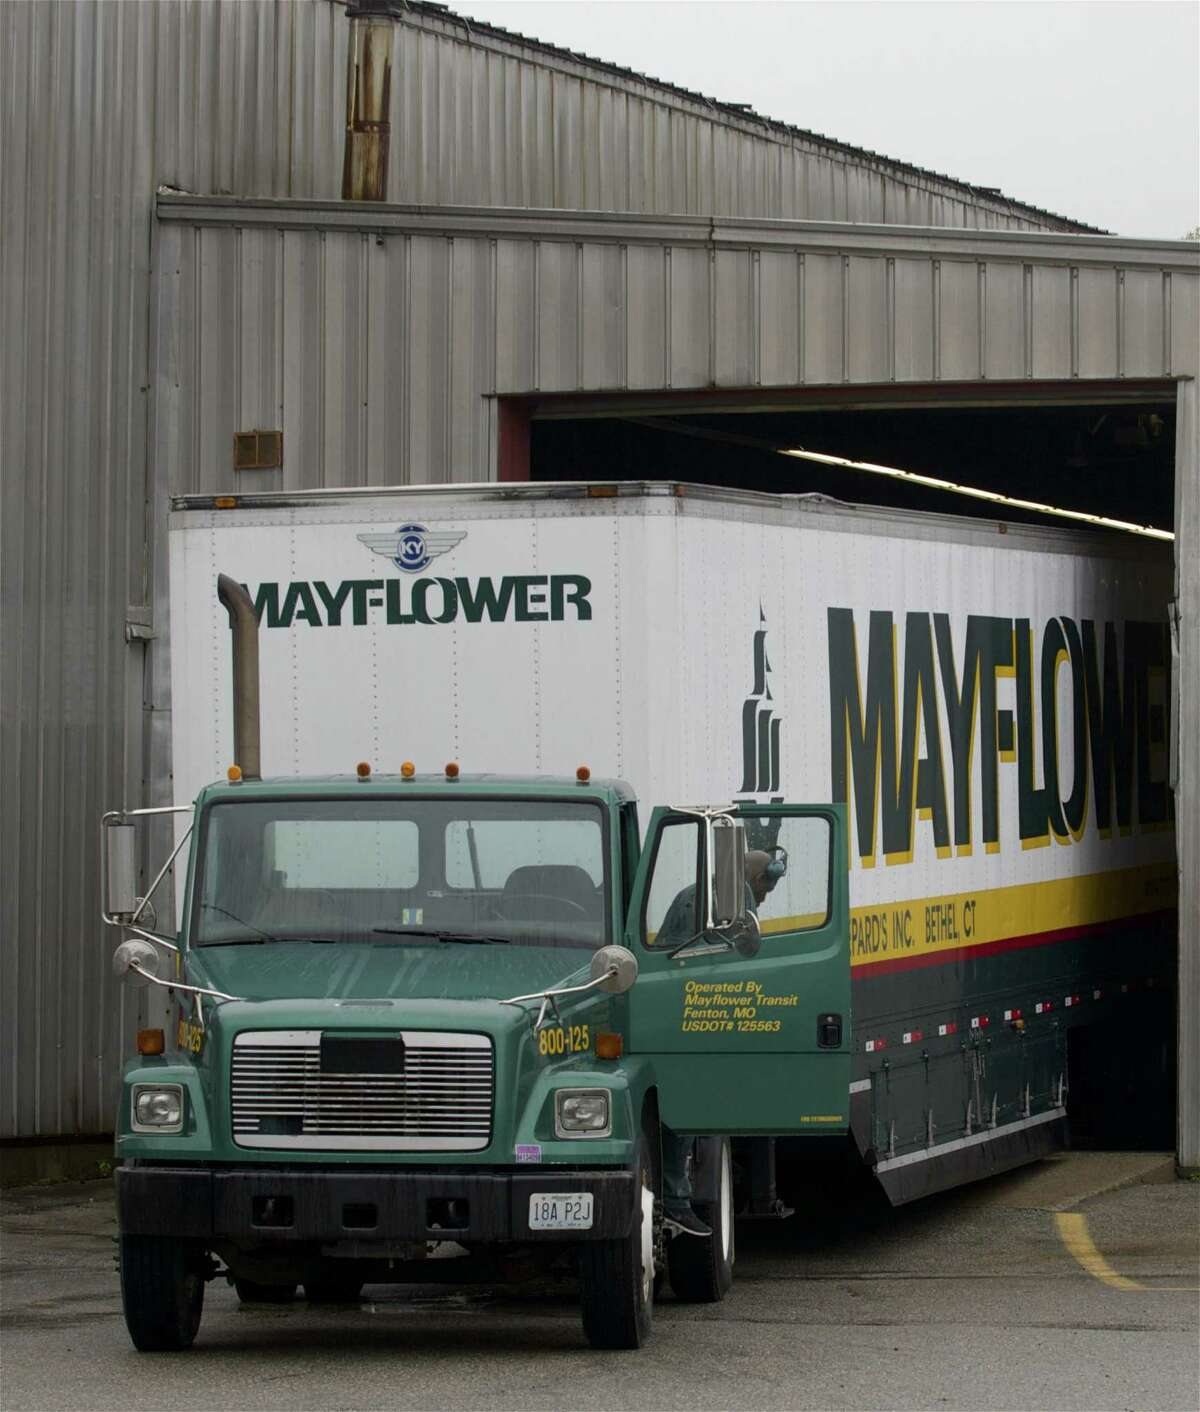 A Mayflower truck loads household belongings at Shepard's, a moving company in Bethel, Conn that provides home relocation services.